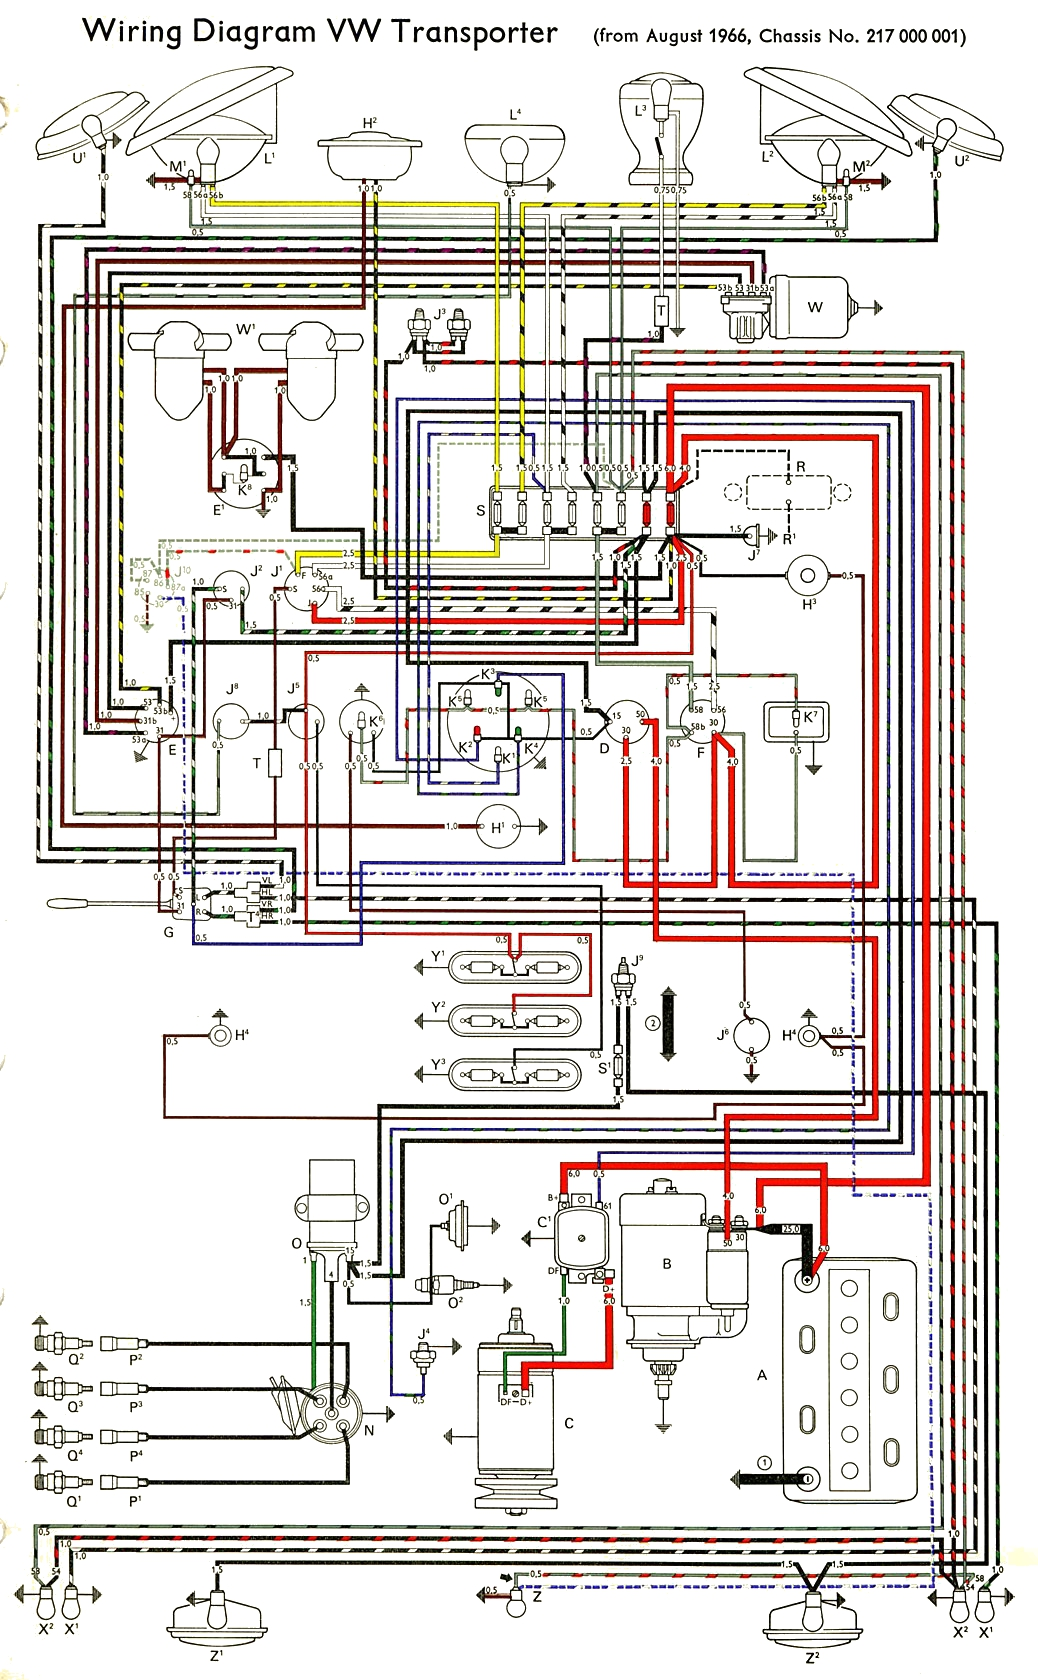 Type 2 Wiring Diagrams Diagram Further 1974 Plymouth Duster Ignition